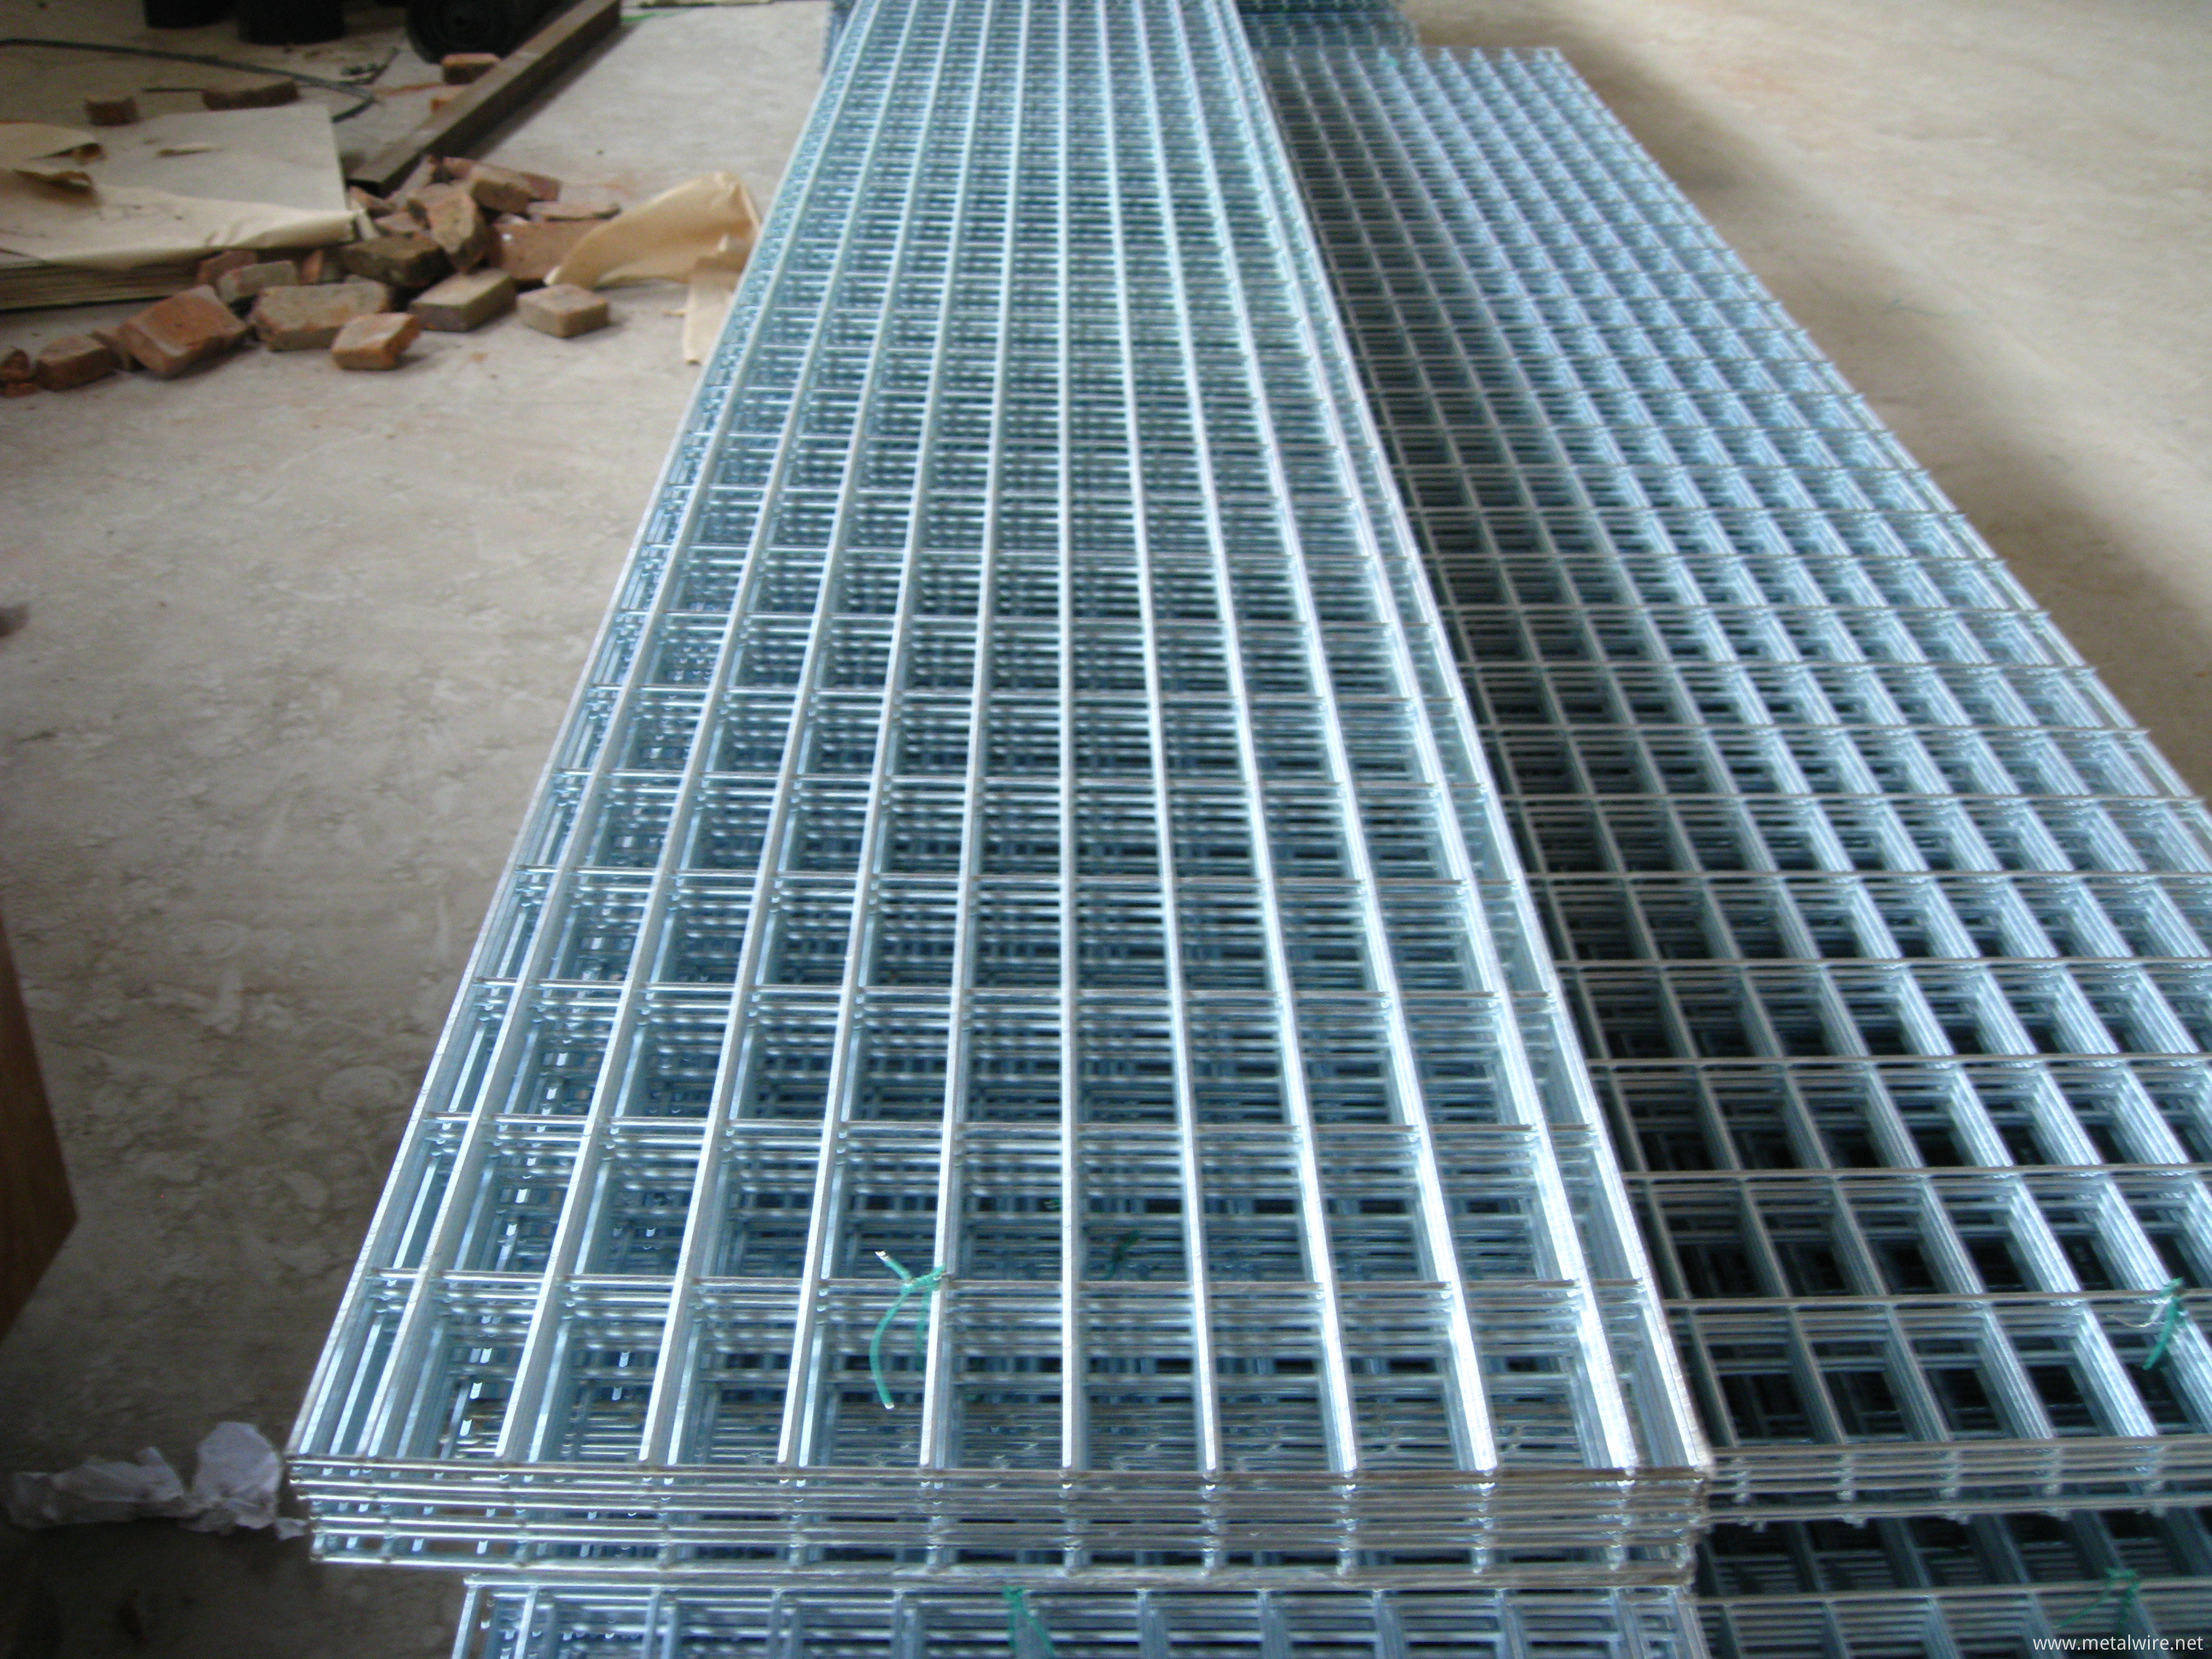 Reinforcing Welded Wire Mesh, Welded Fence Mesh Wholesale From China